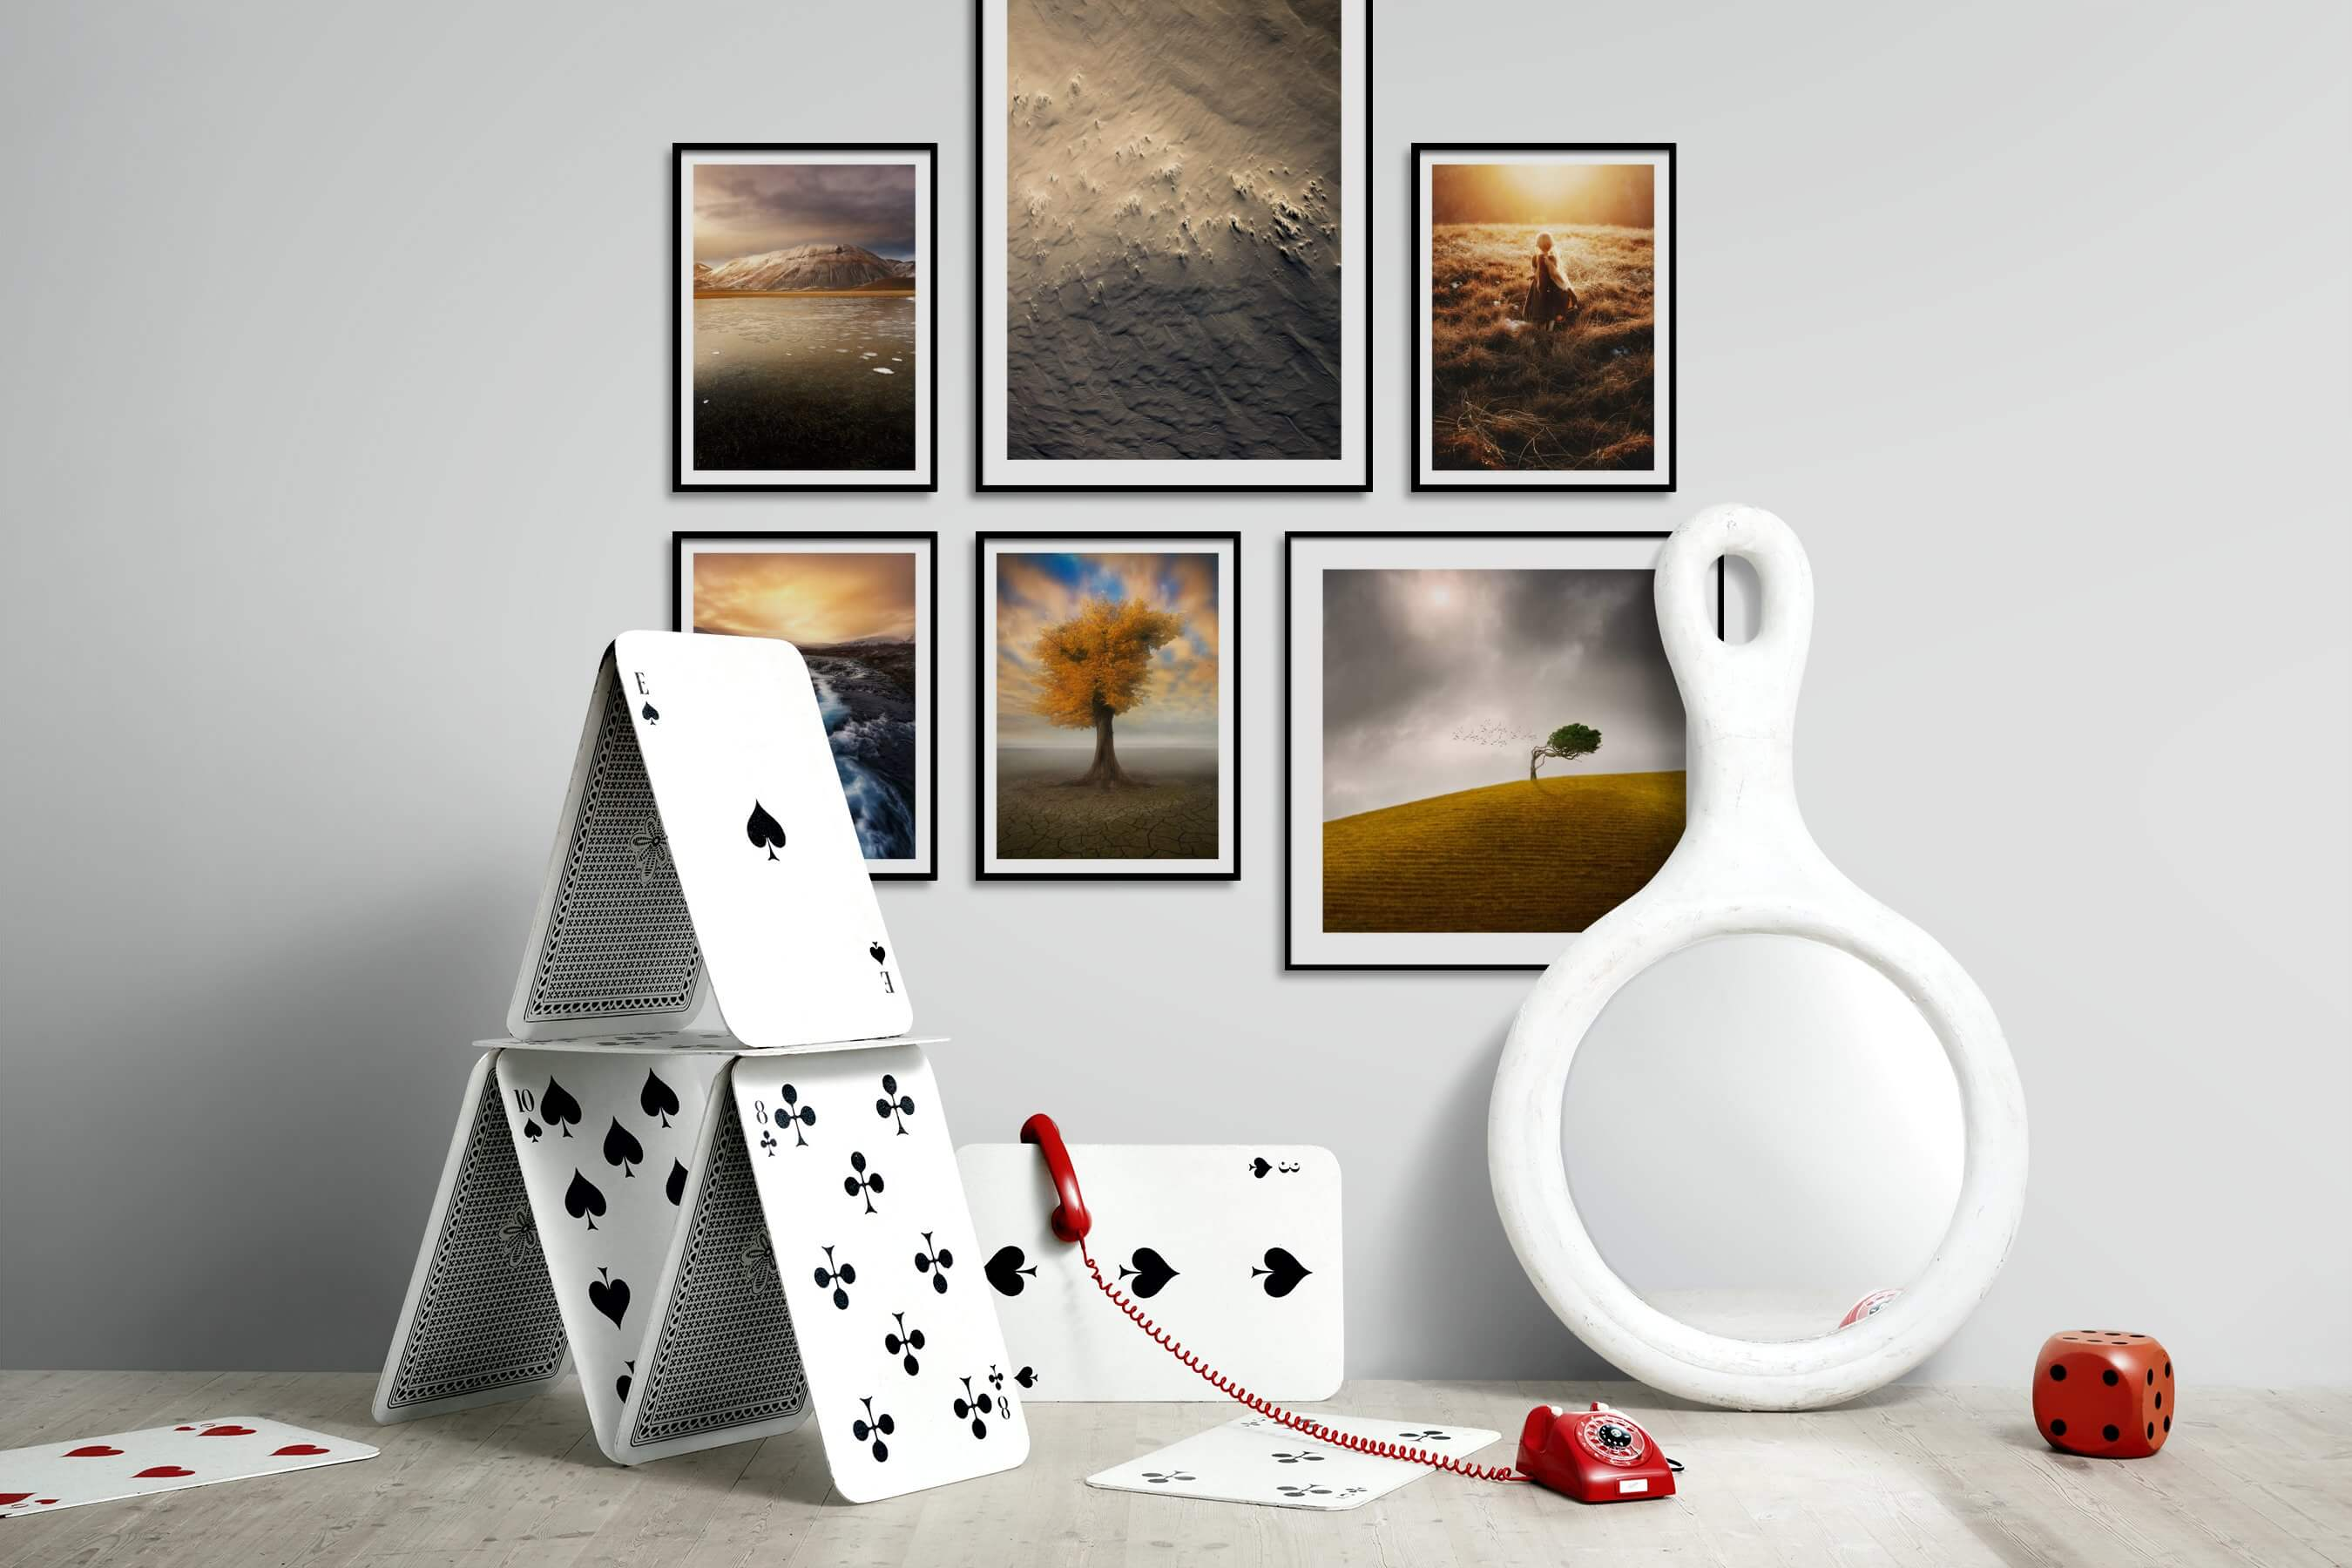 Gallery wall idea with six framed pictures arranged on a wall depicting Nature, For the Minimalist, Country Life, and Mindfulness